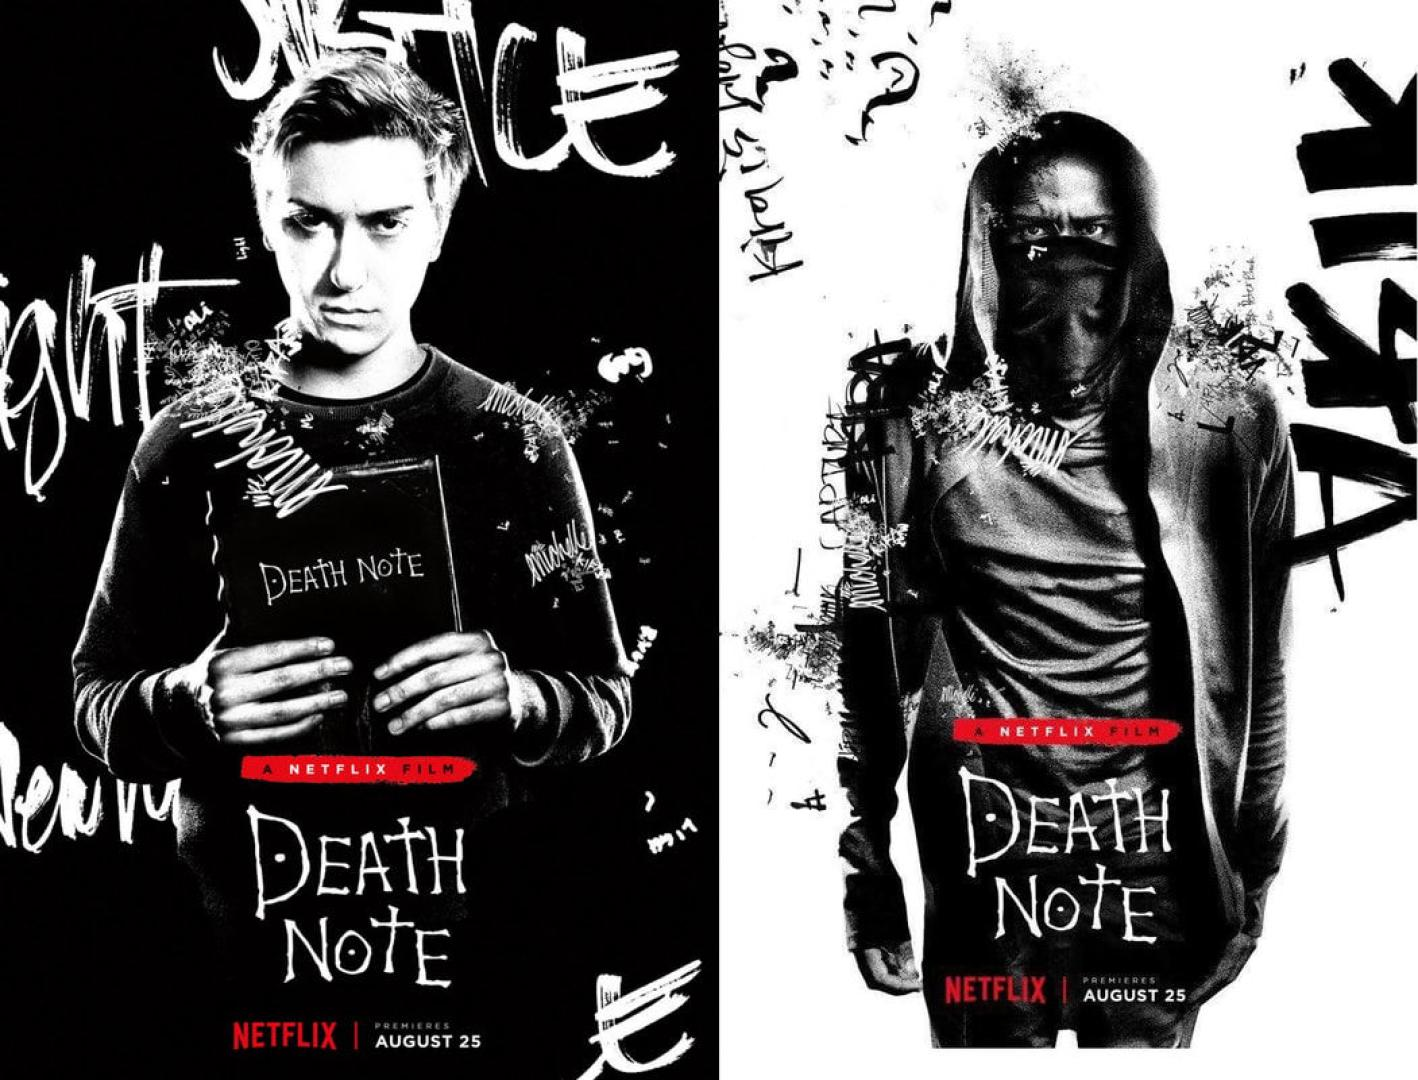 death_note_1_kep